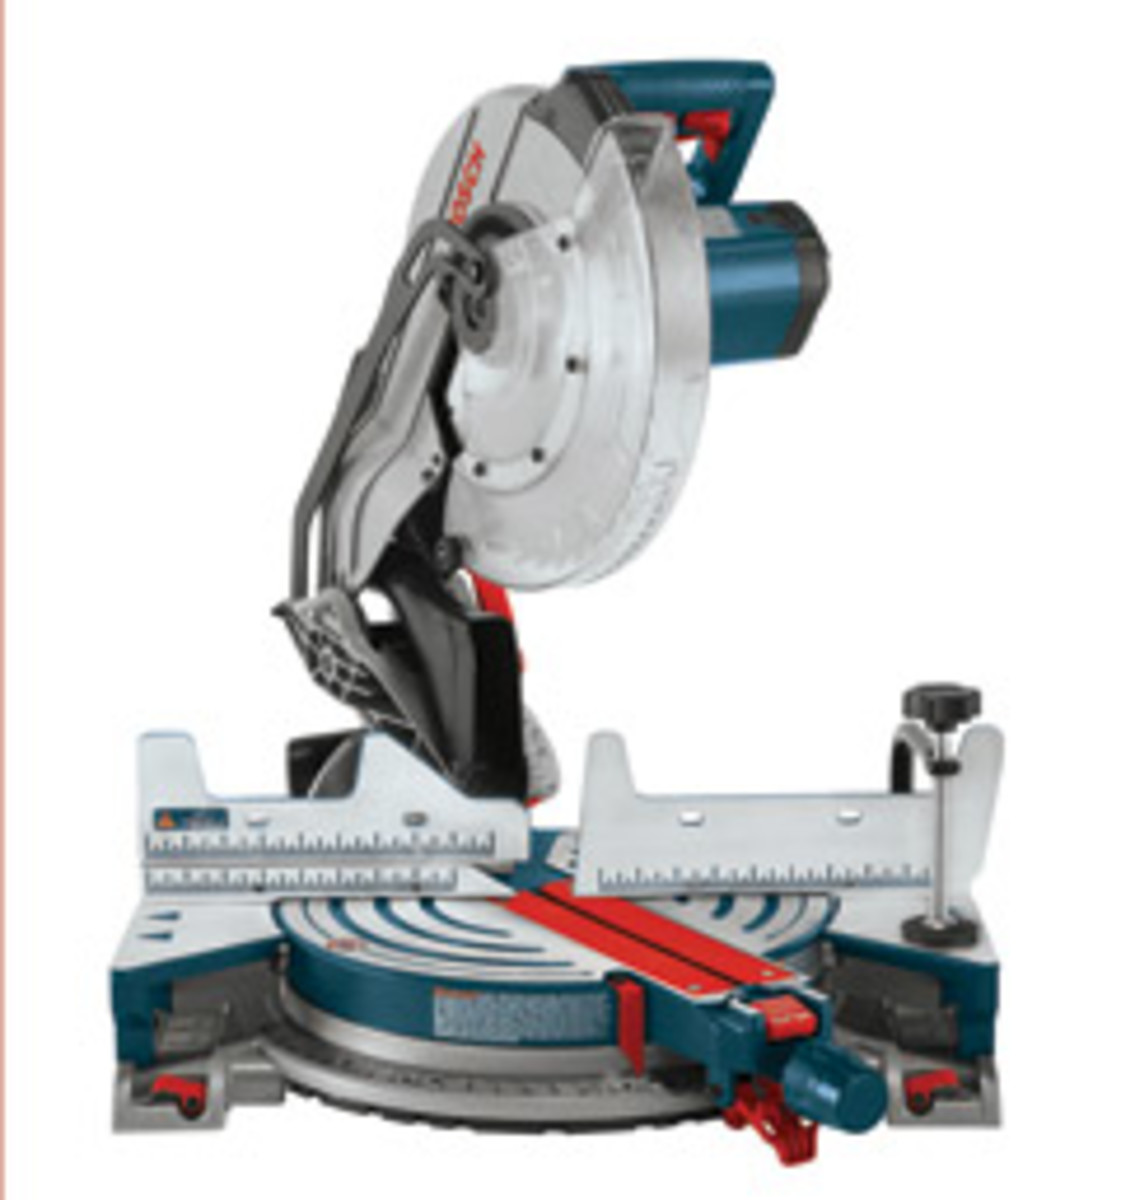 The Bosch CM12 single-bevel compound miter saw is made for bringing it to and from the job site, according to the company.